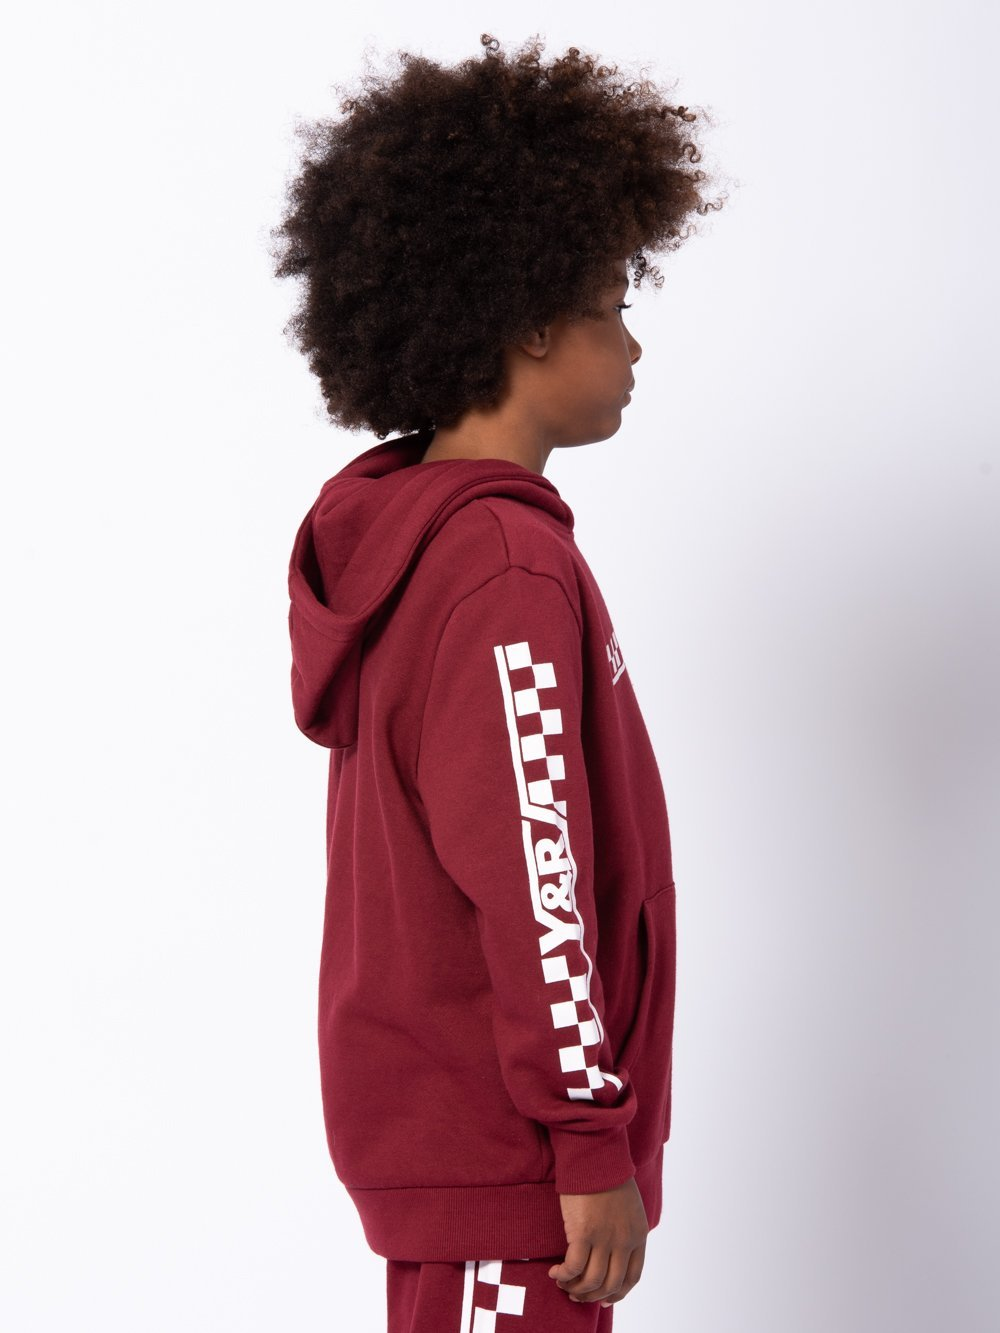 ... Young and Reckless Boys Youth - Tops - Hoodies Youth Excursion Hoodie -  Burgundy ... 6425b9c7a